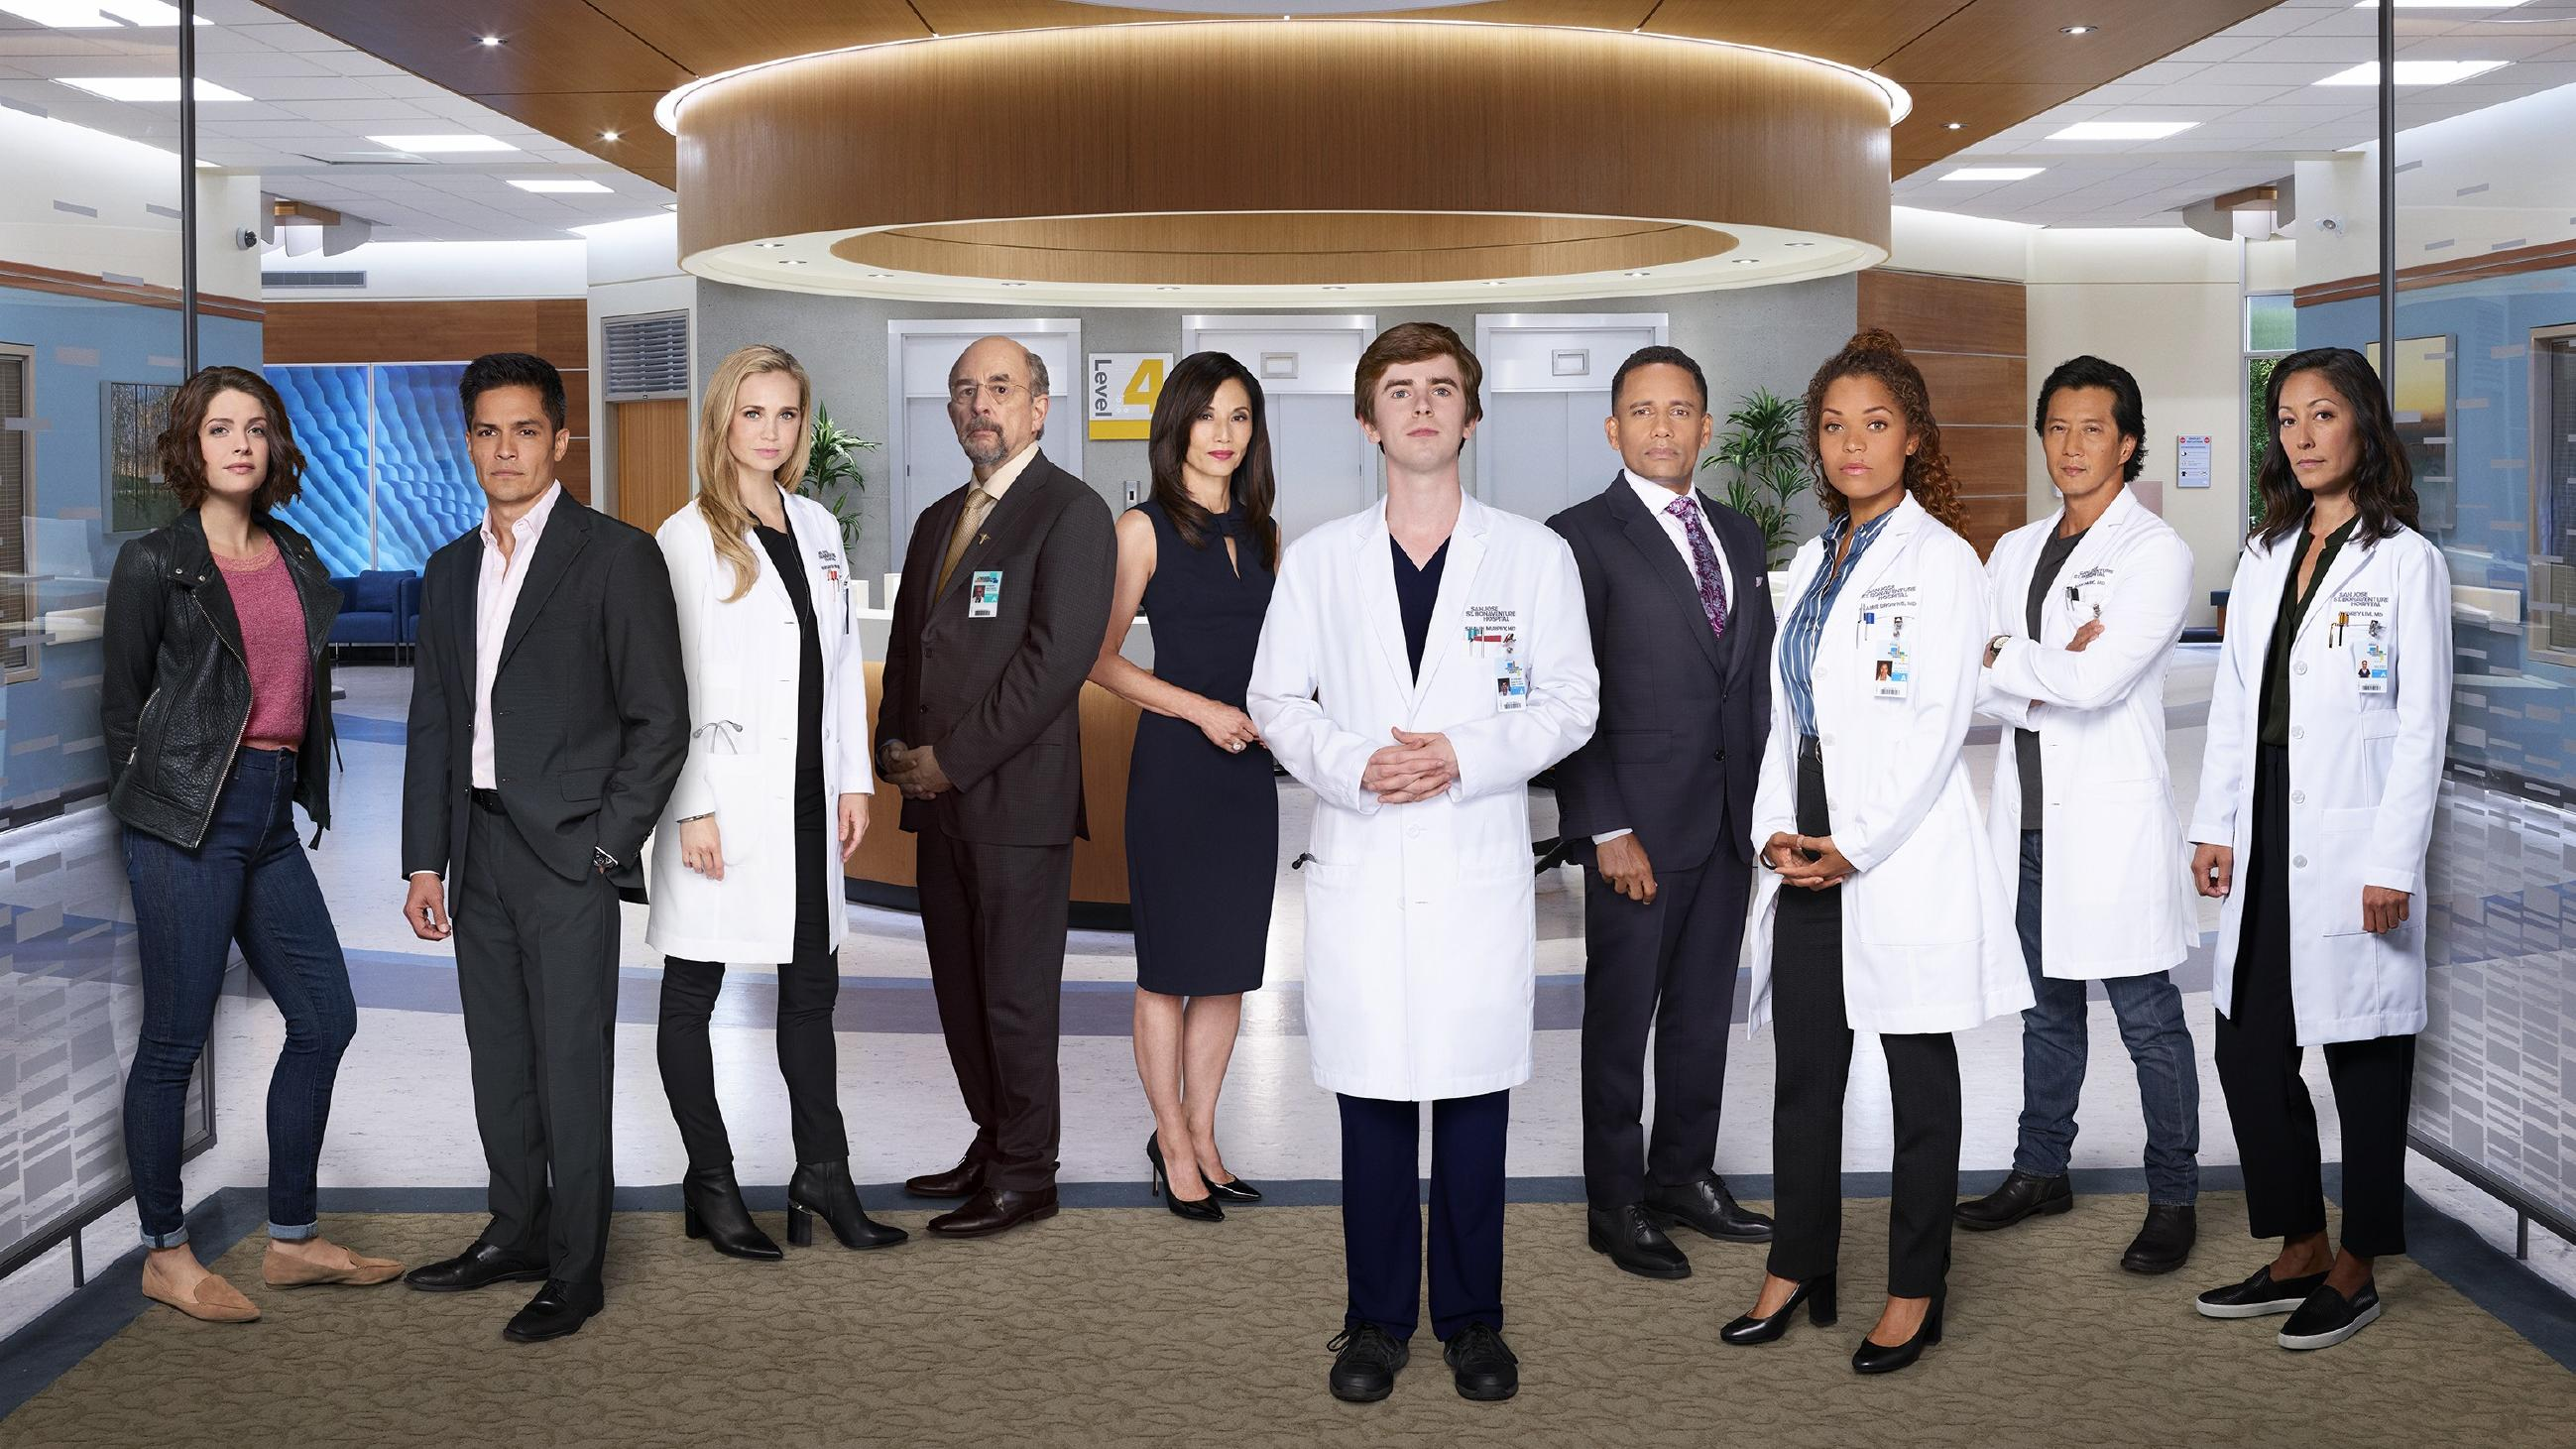 The Good Doctor: Die zweite Staffel startet bei VOX am 11. September